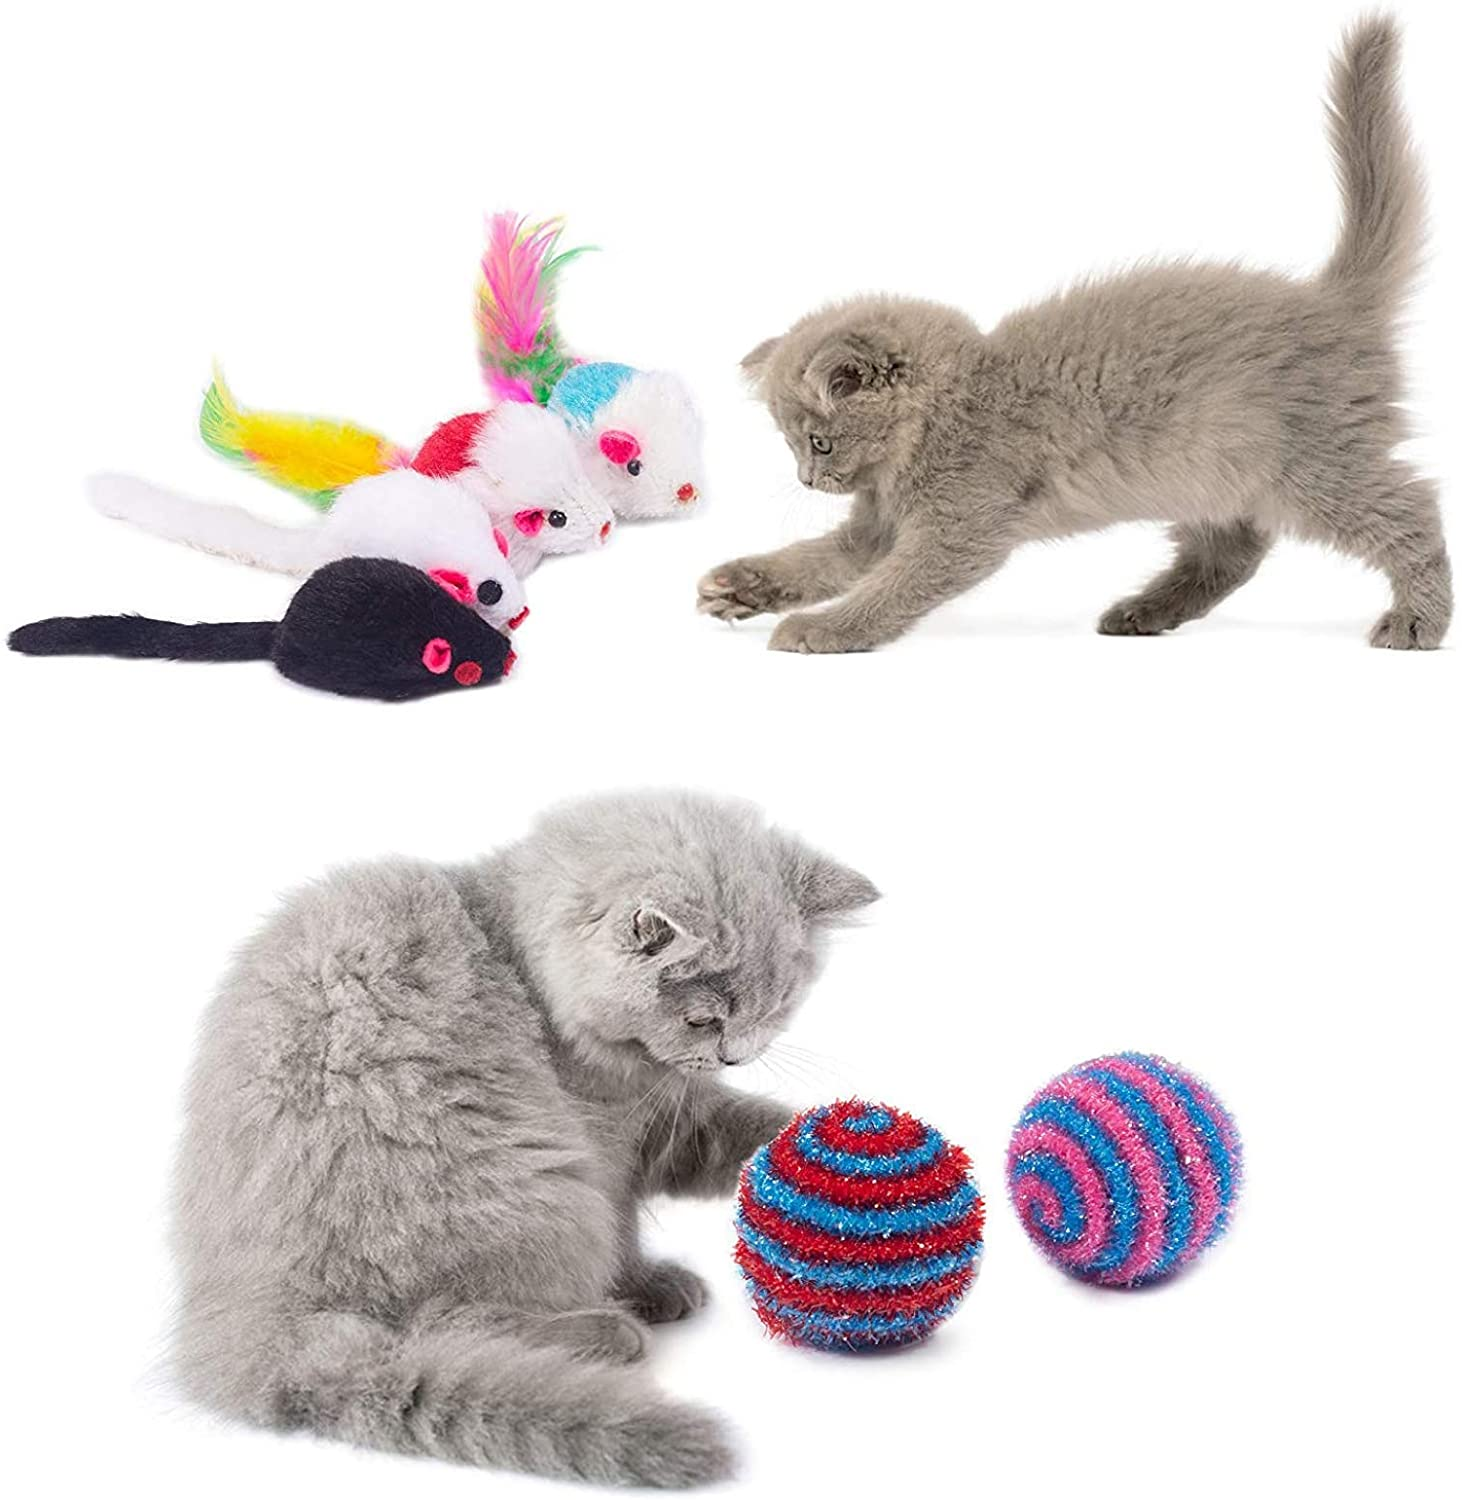 Cat Toys Kitten Toys 29pcs Assorted Cat Tunnel Catnip Fish Feather Teaser Wand Fish Fluffy Mouse Mice Balls and Bells Toys Storage Bag Set Kit Interactive cat Toys cat Feather Toy Mlorine